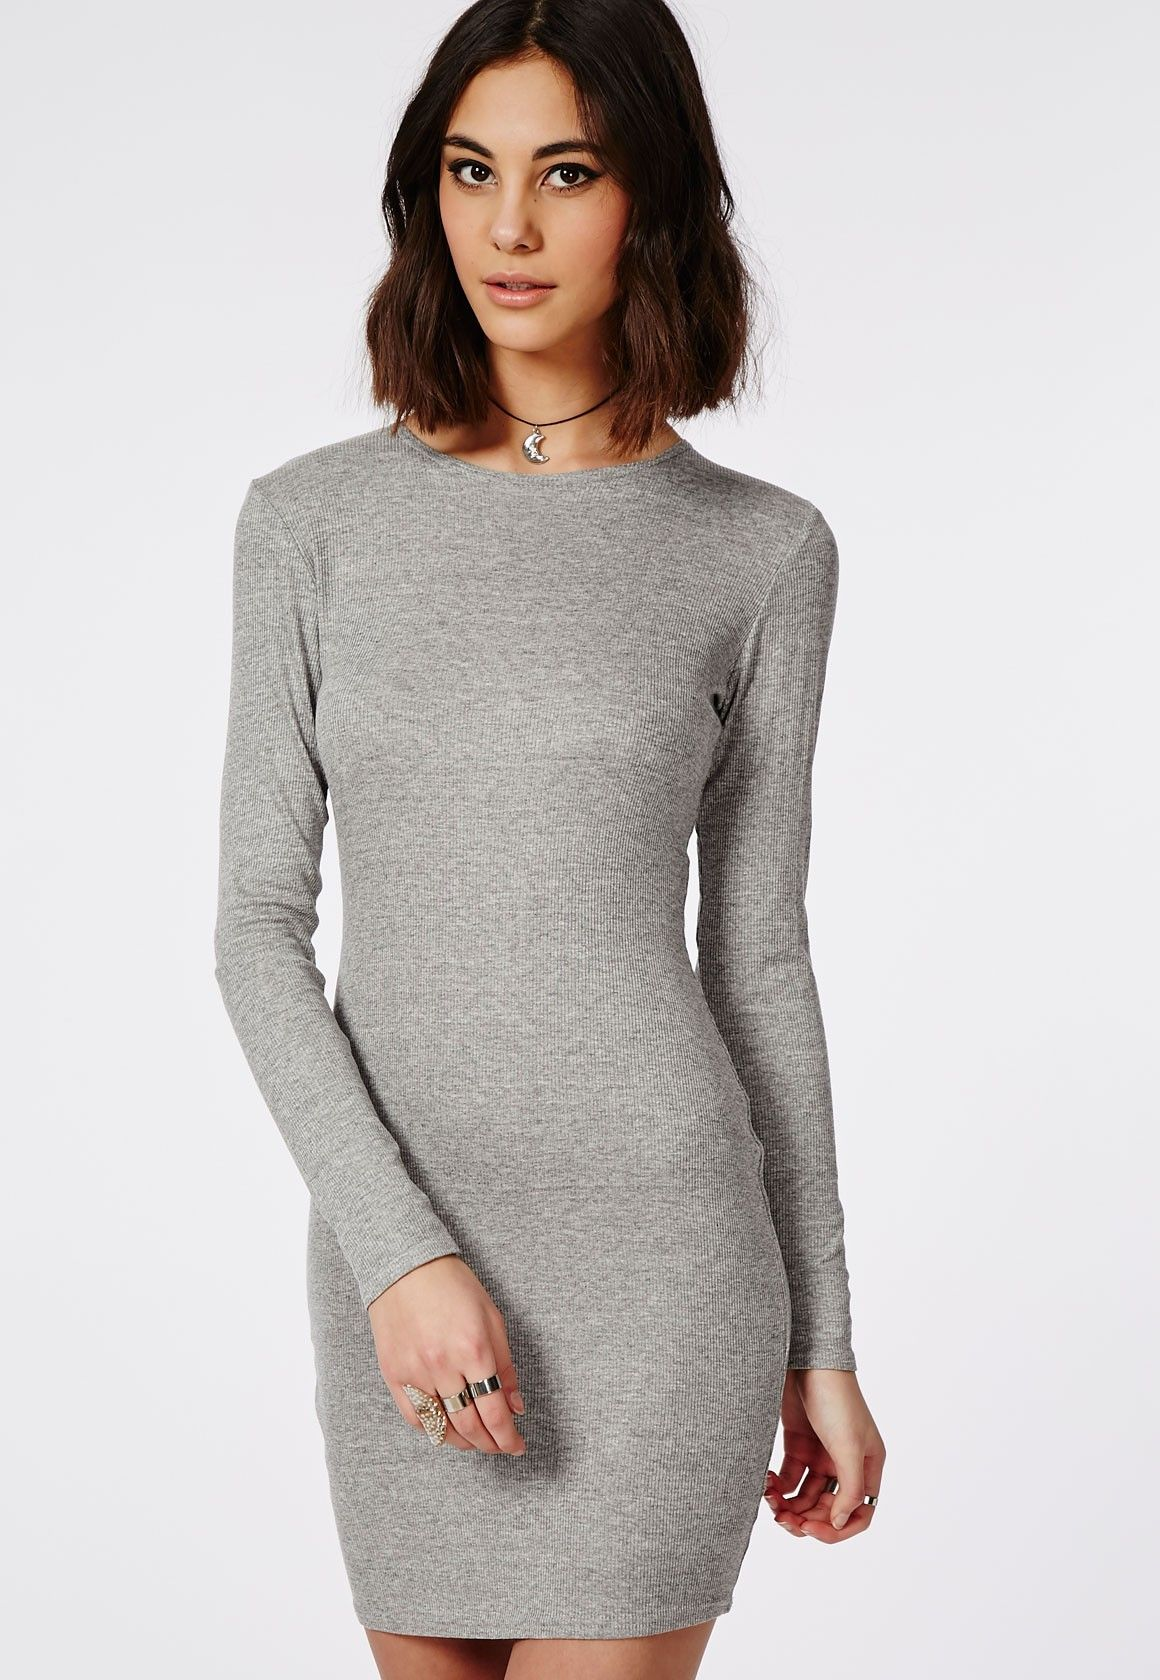 55ff56be38d Long Sleeve Ribbed Bodycon Dress Grey - Dresses - Bodycon Dresses -  Missguided